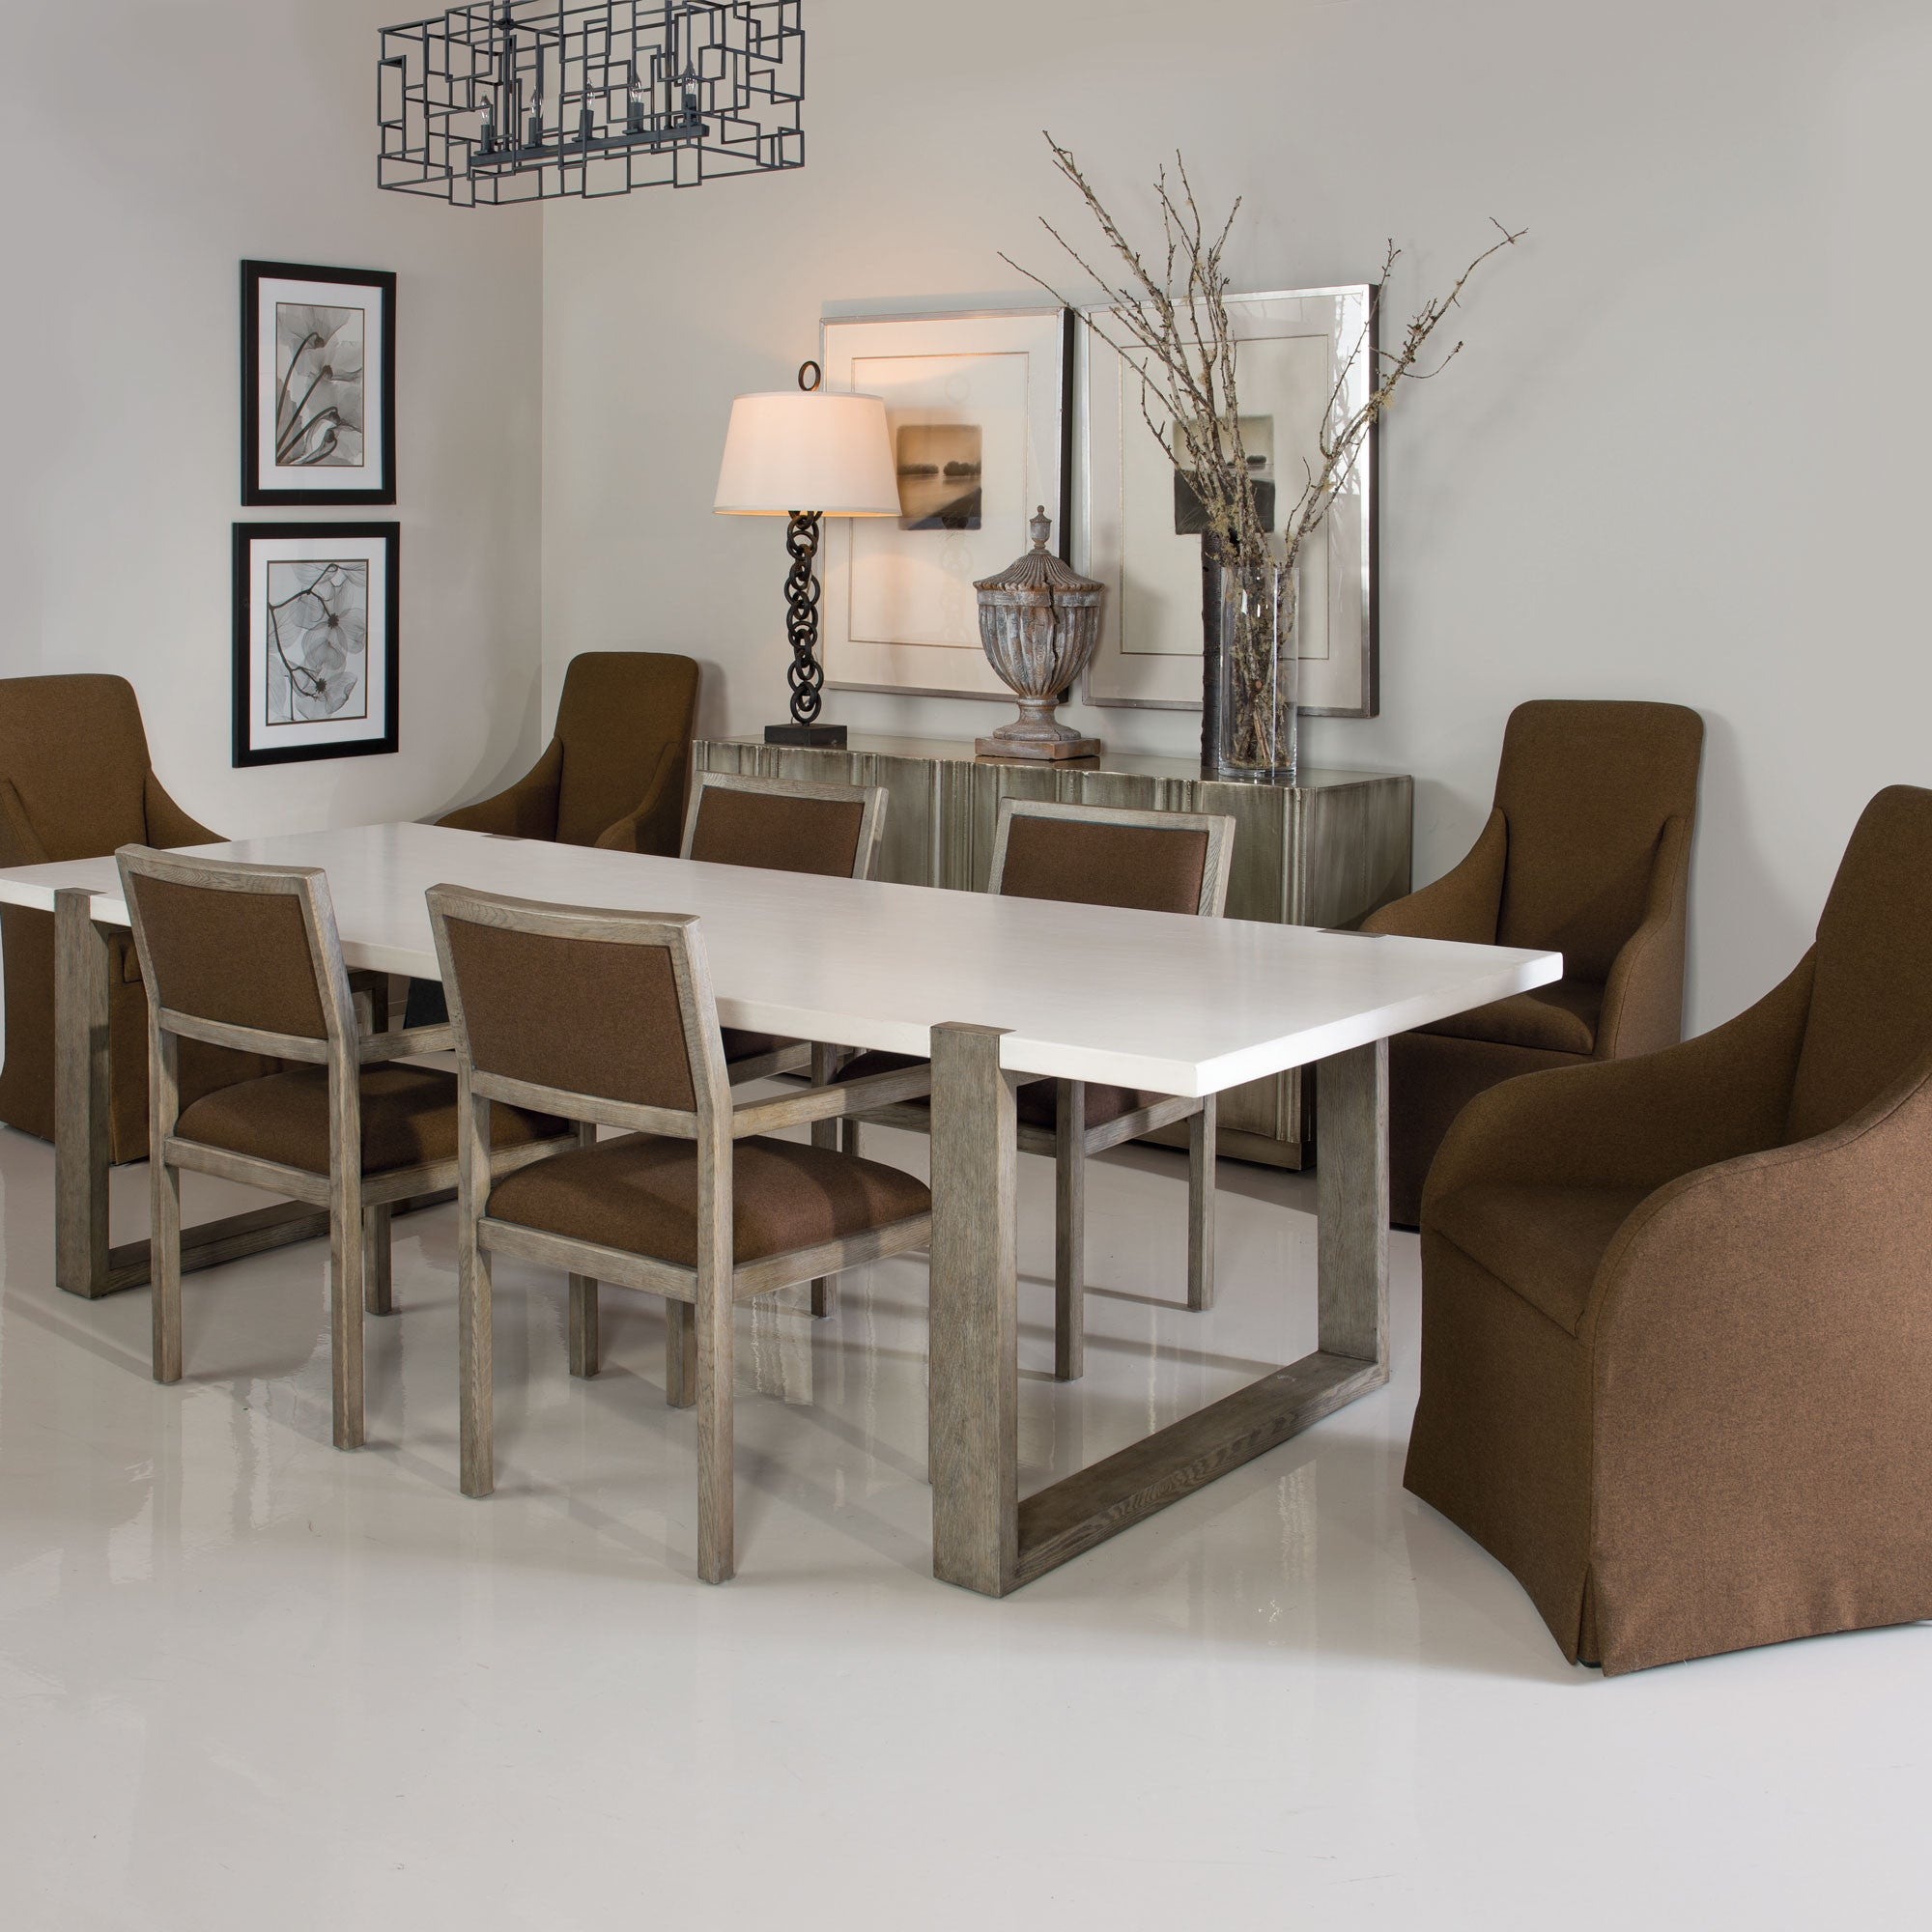 Hadleigh Dining Table - Bernhardt Interiors | Luxe Home Philadelphia